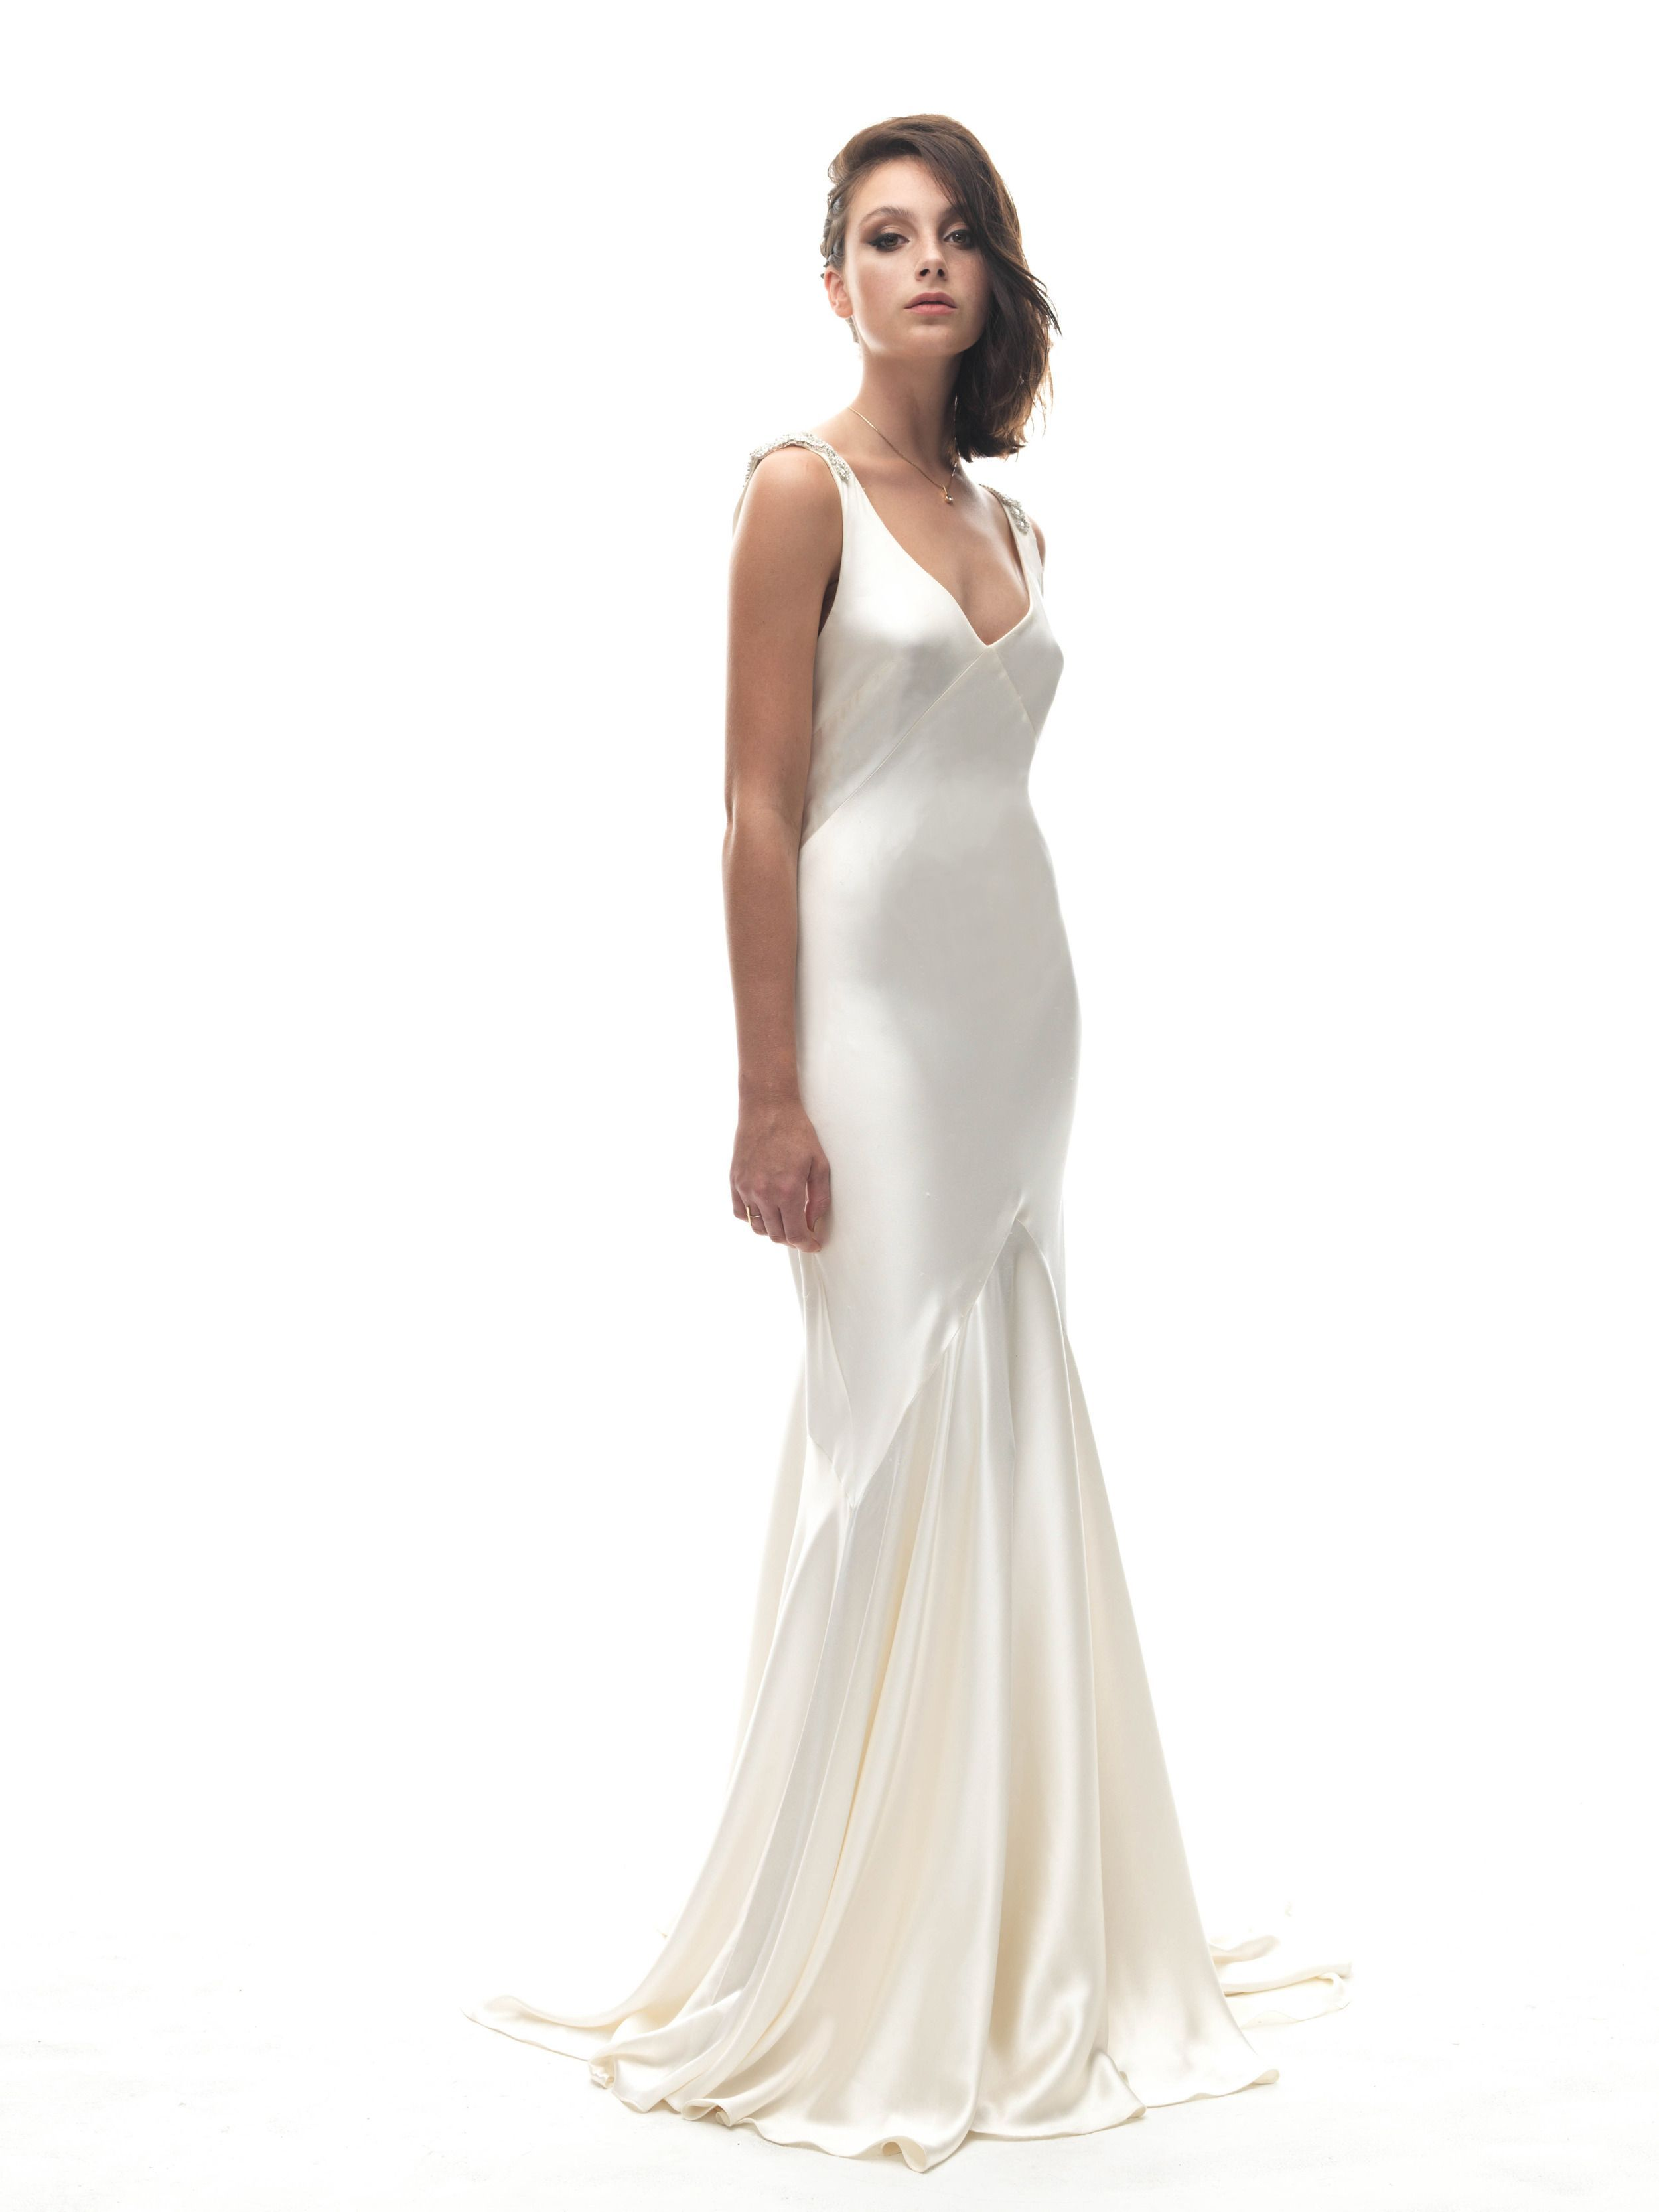 Bias Cut Silk Charmeuse Gown With Full